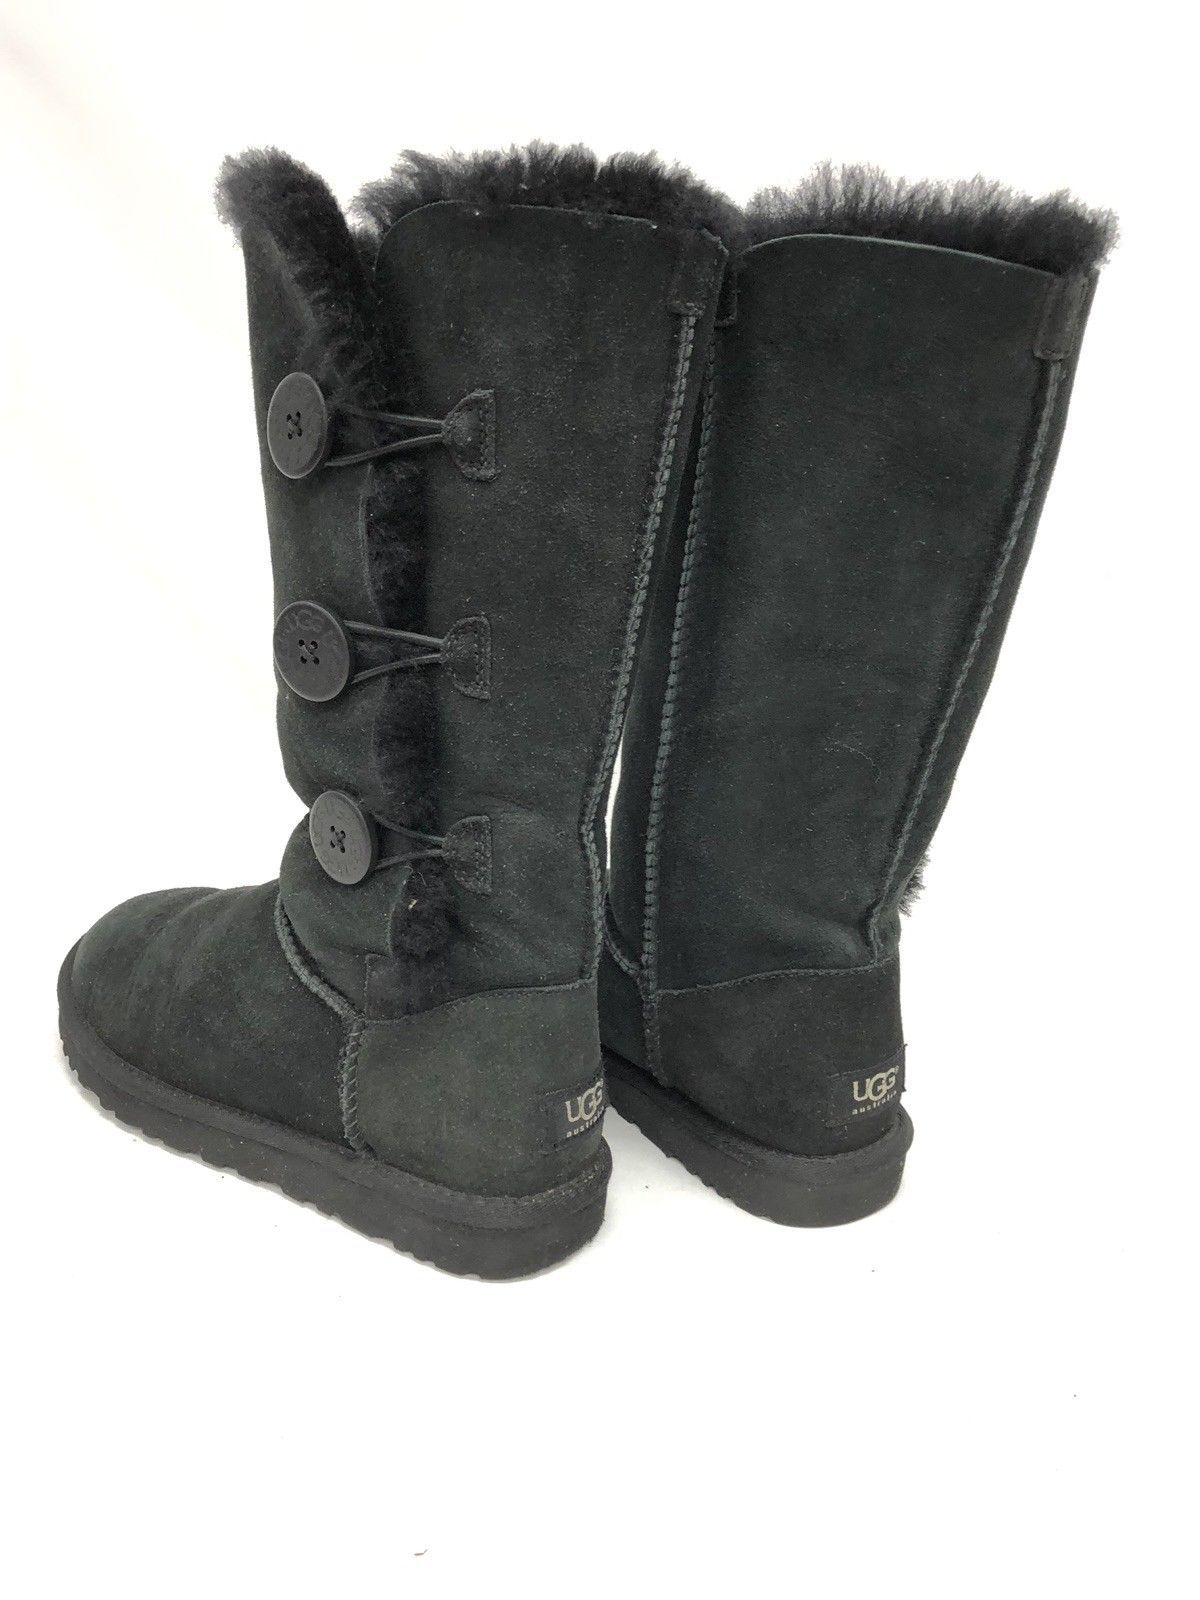 Details about UGG DRY LEAF BAILEY BOW SUEDE SHEEPSKIN BOOTS, WOMENS US 7 EUR 38 ~NIB